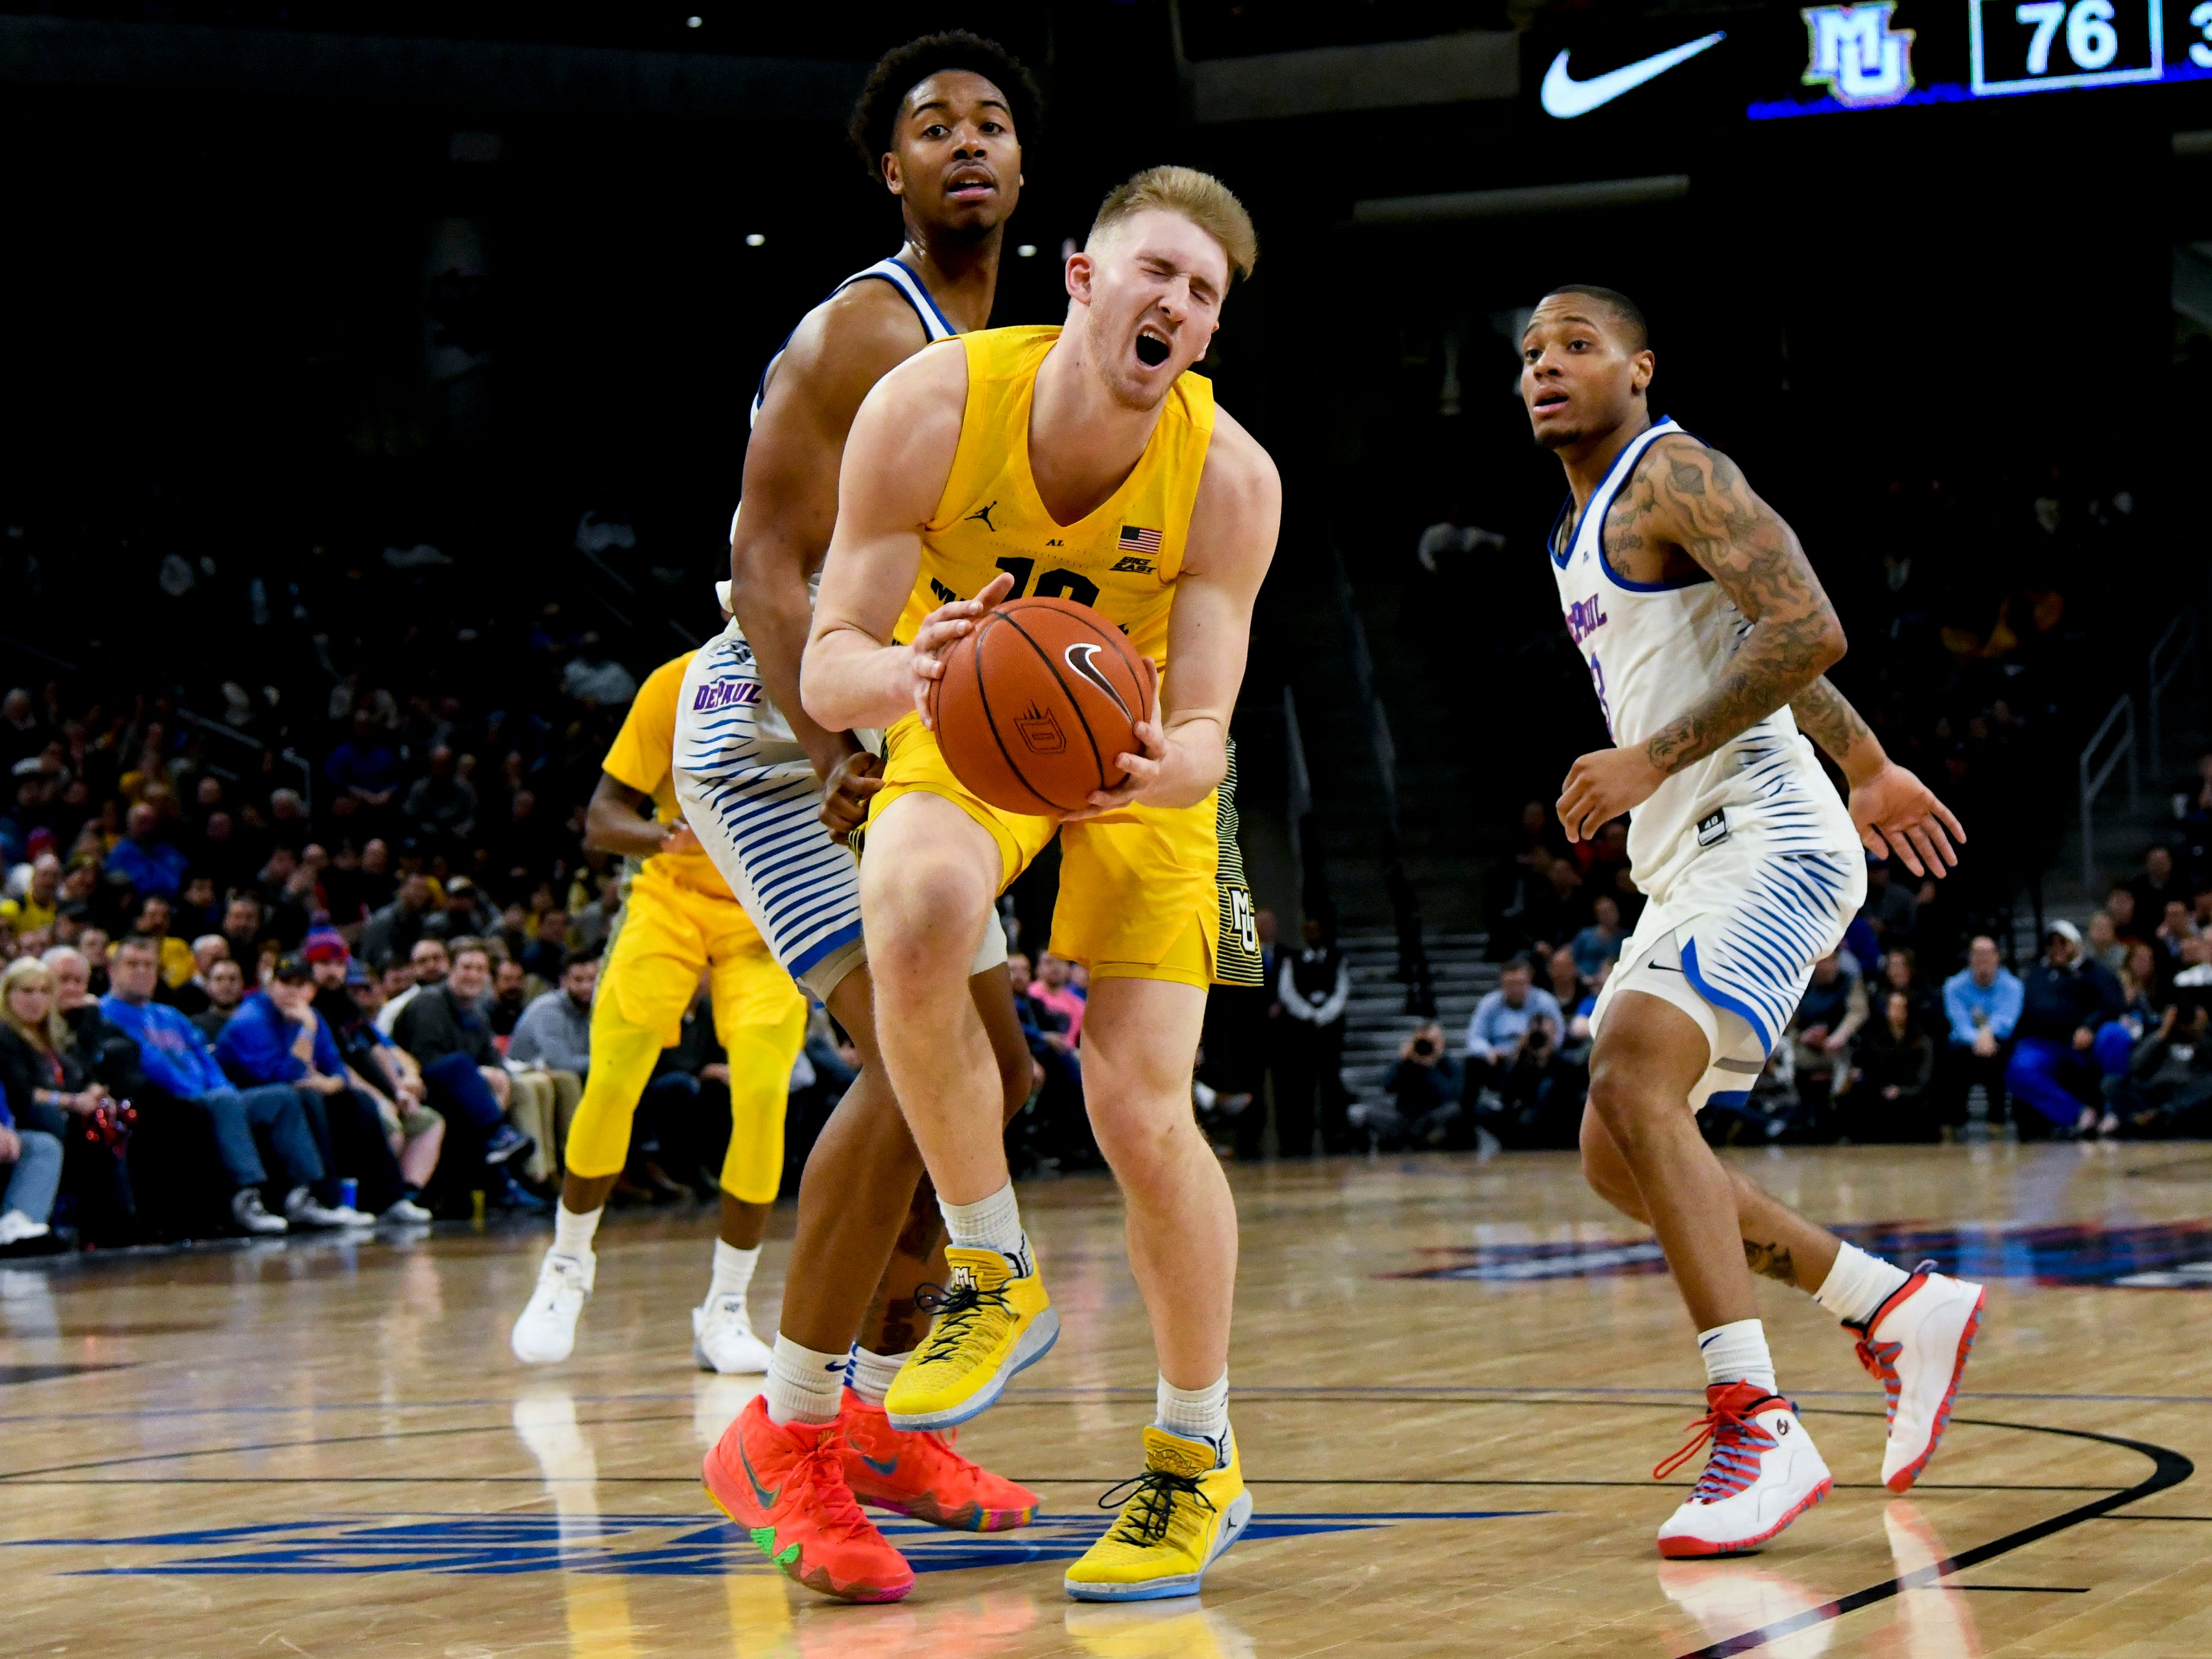 Marquette forward Sam Hauser is  poked in the eye while fighting for control of the ball with DePaul guard Eli Cain.